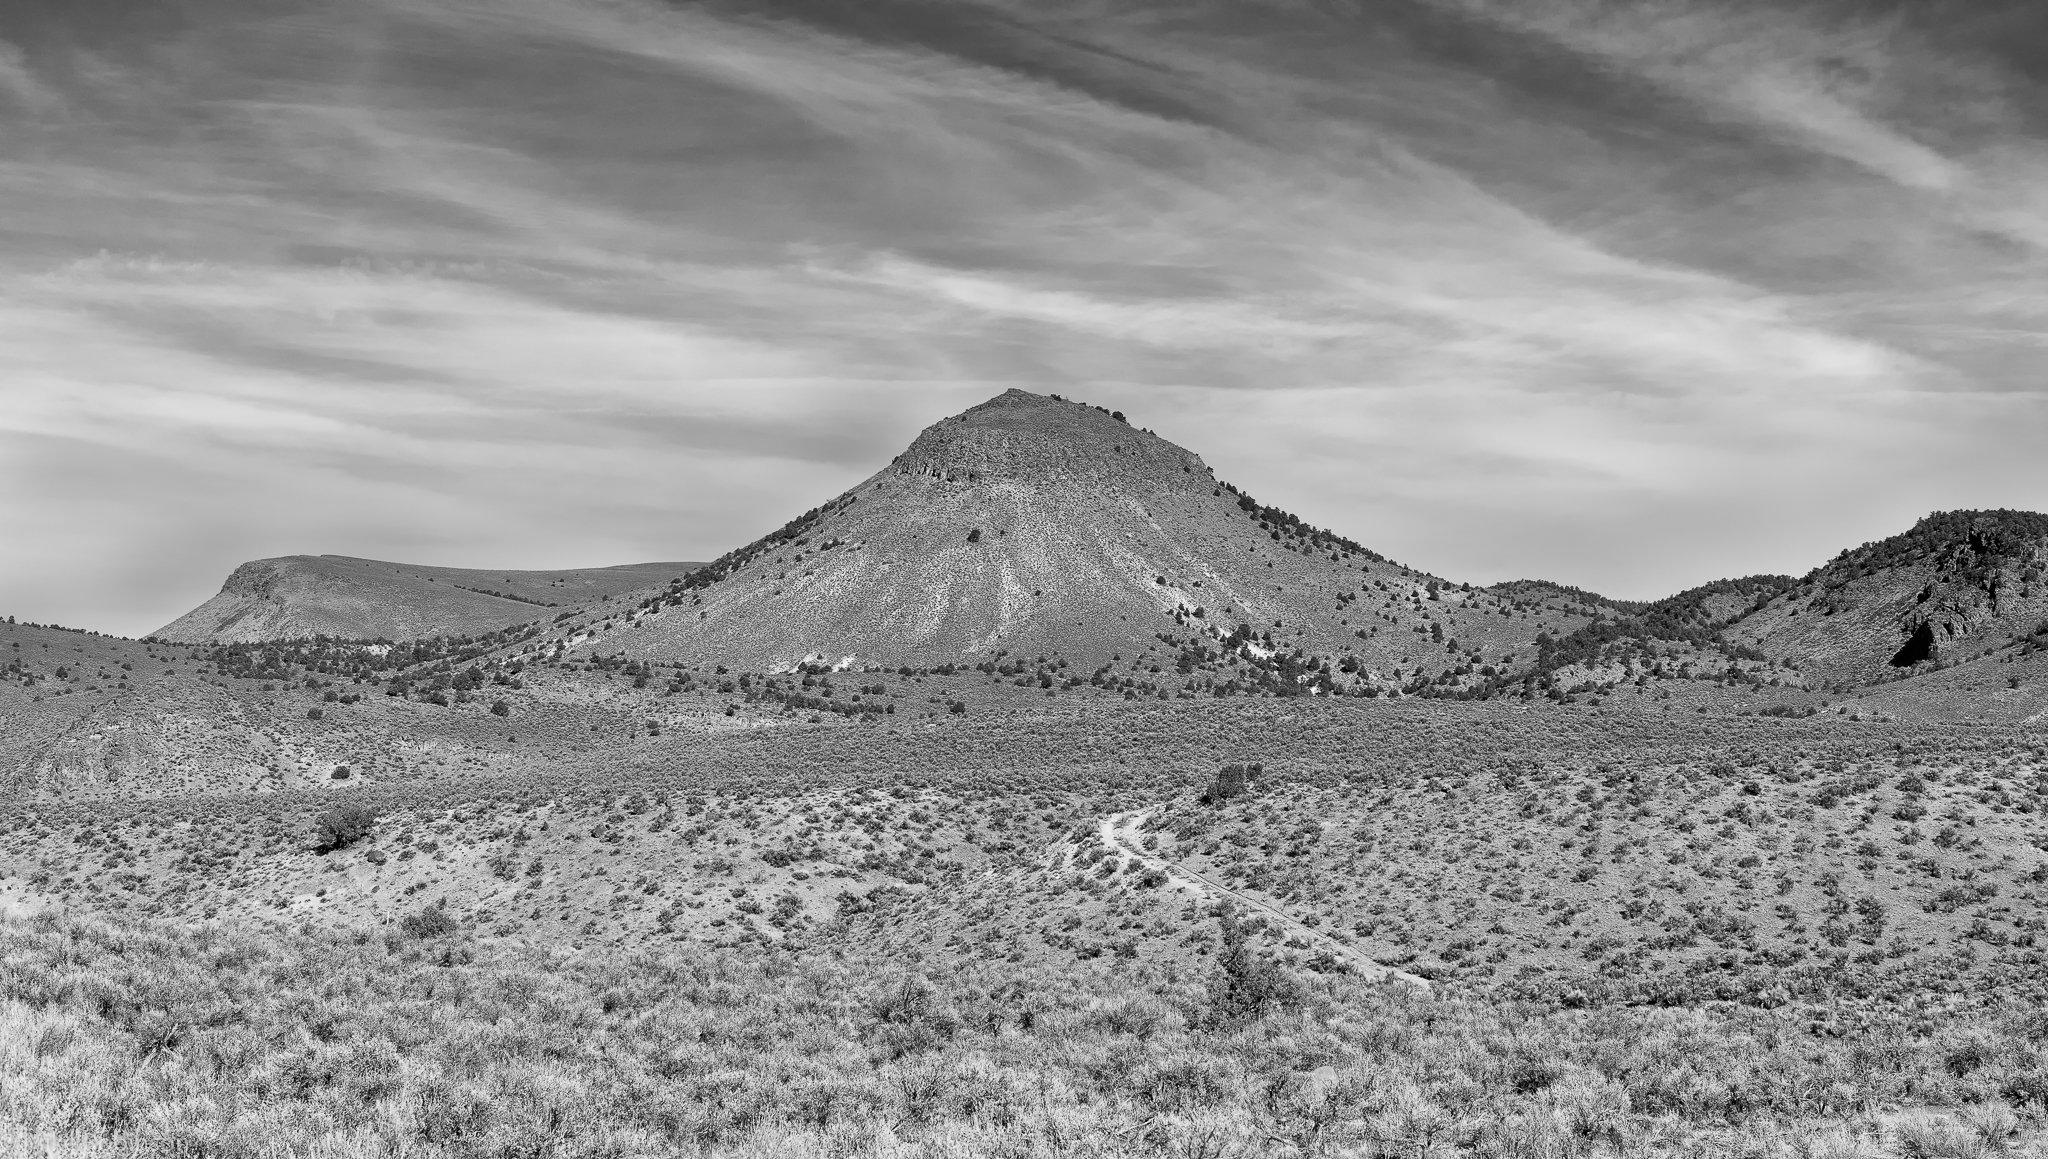 Nevada_Badlands_BW